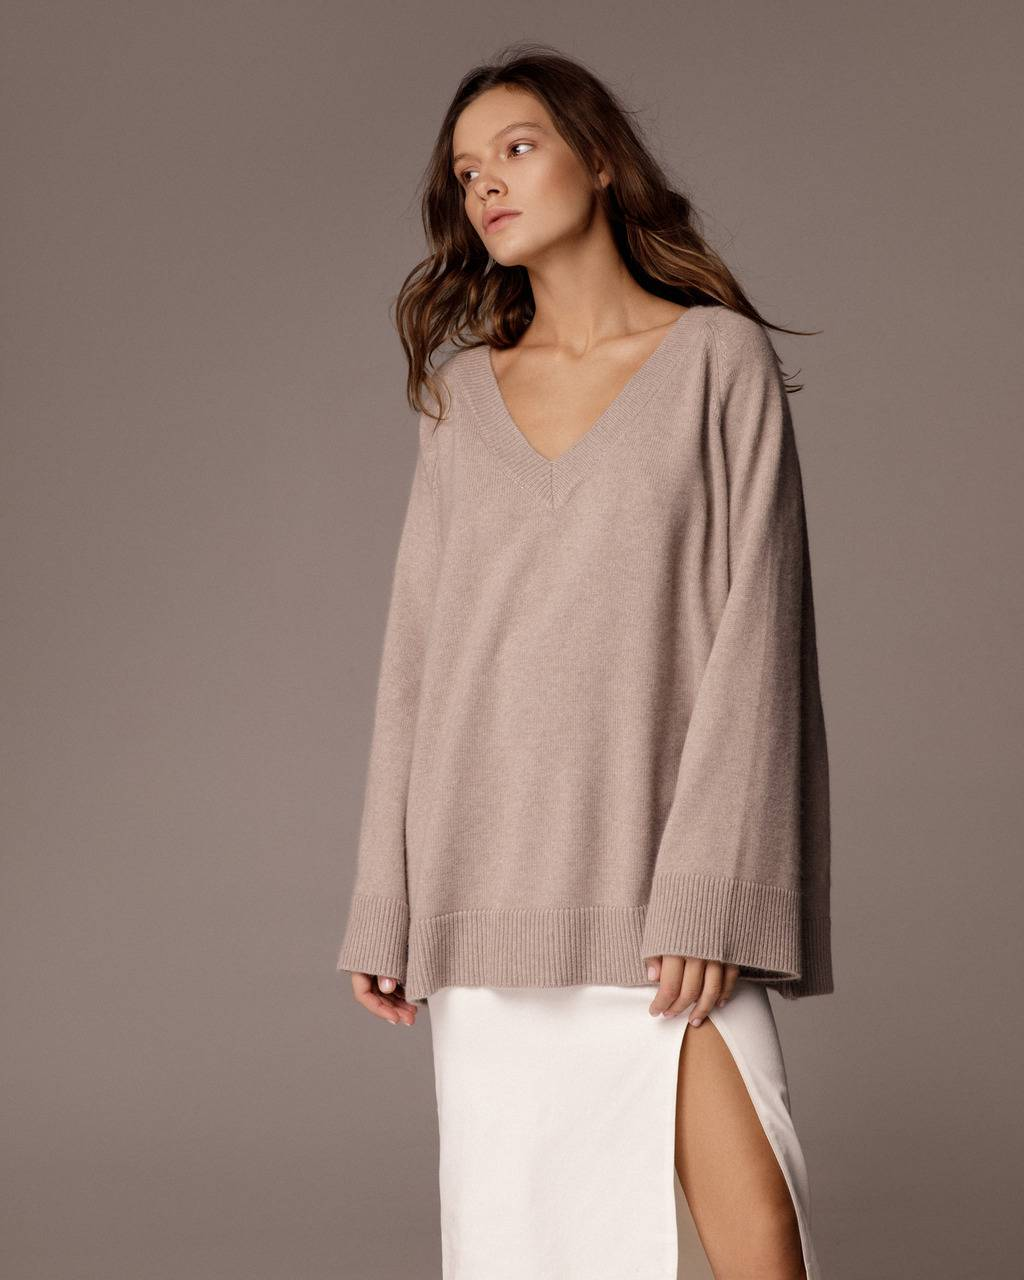 Extra soft cashmere V-neck jumper - 325 USD / 280  EUR